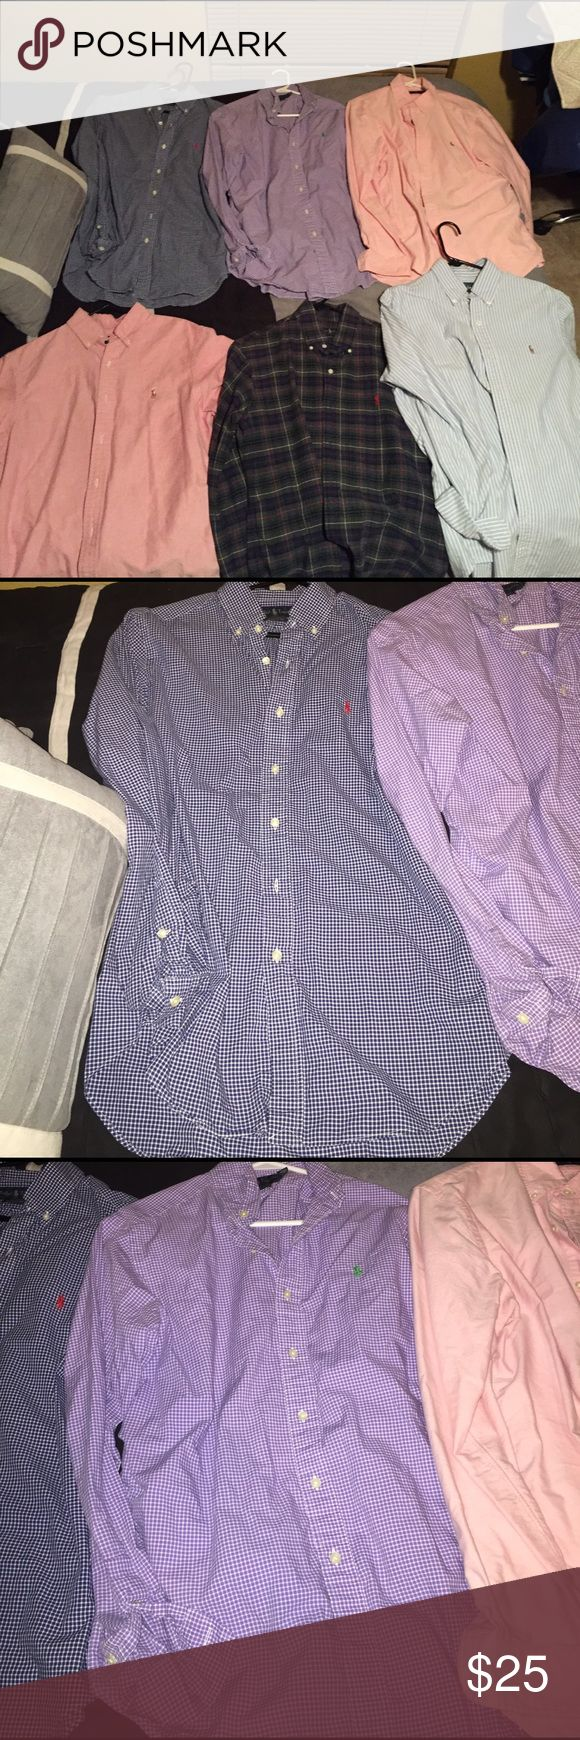 Polo by Ralph Lauren dress shirts **Price Negotiable** Price will be lowered if more than one is purchased at the same time. All have 0 flaws! no tears, rips or holes. All have 0 buttons missing. Perfect condition Polo dress shirts. Comment one you want and I will create a separate listing for you to purchase. Polo by Ralph Lauren Shirts Polos